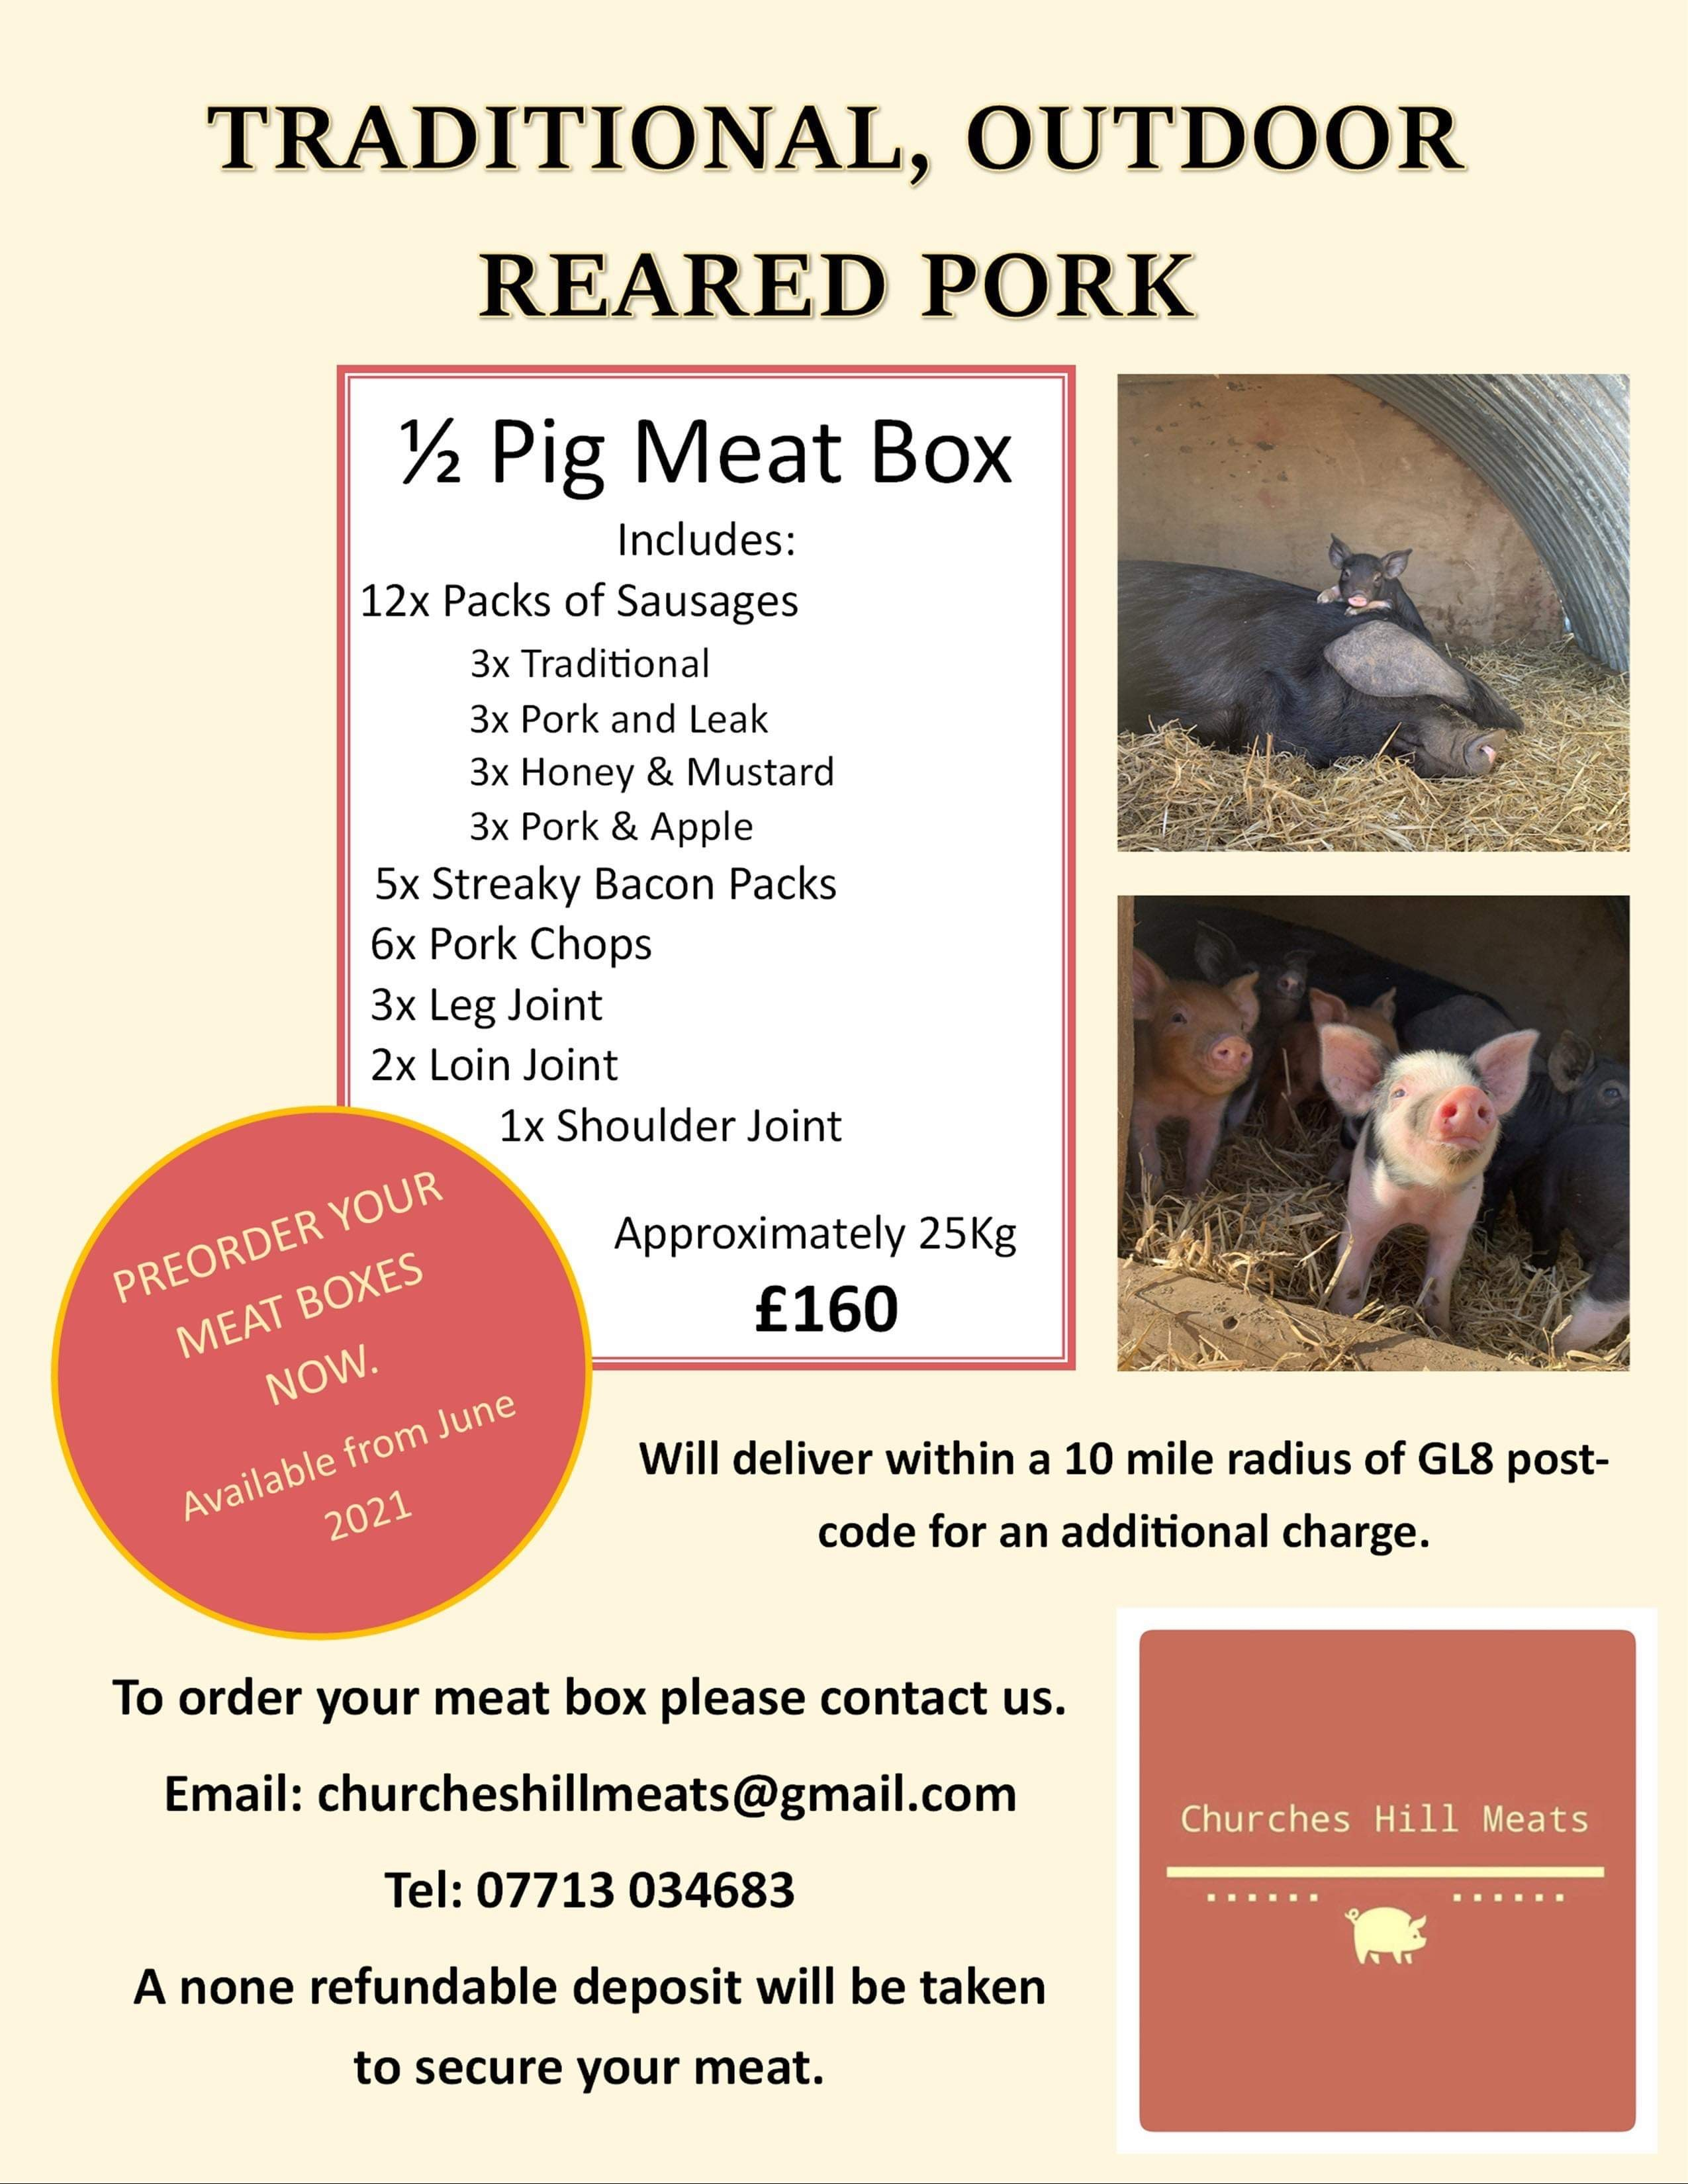 Traditional, Outdoor Reared Pork